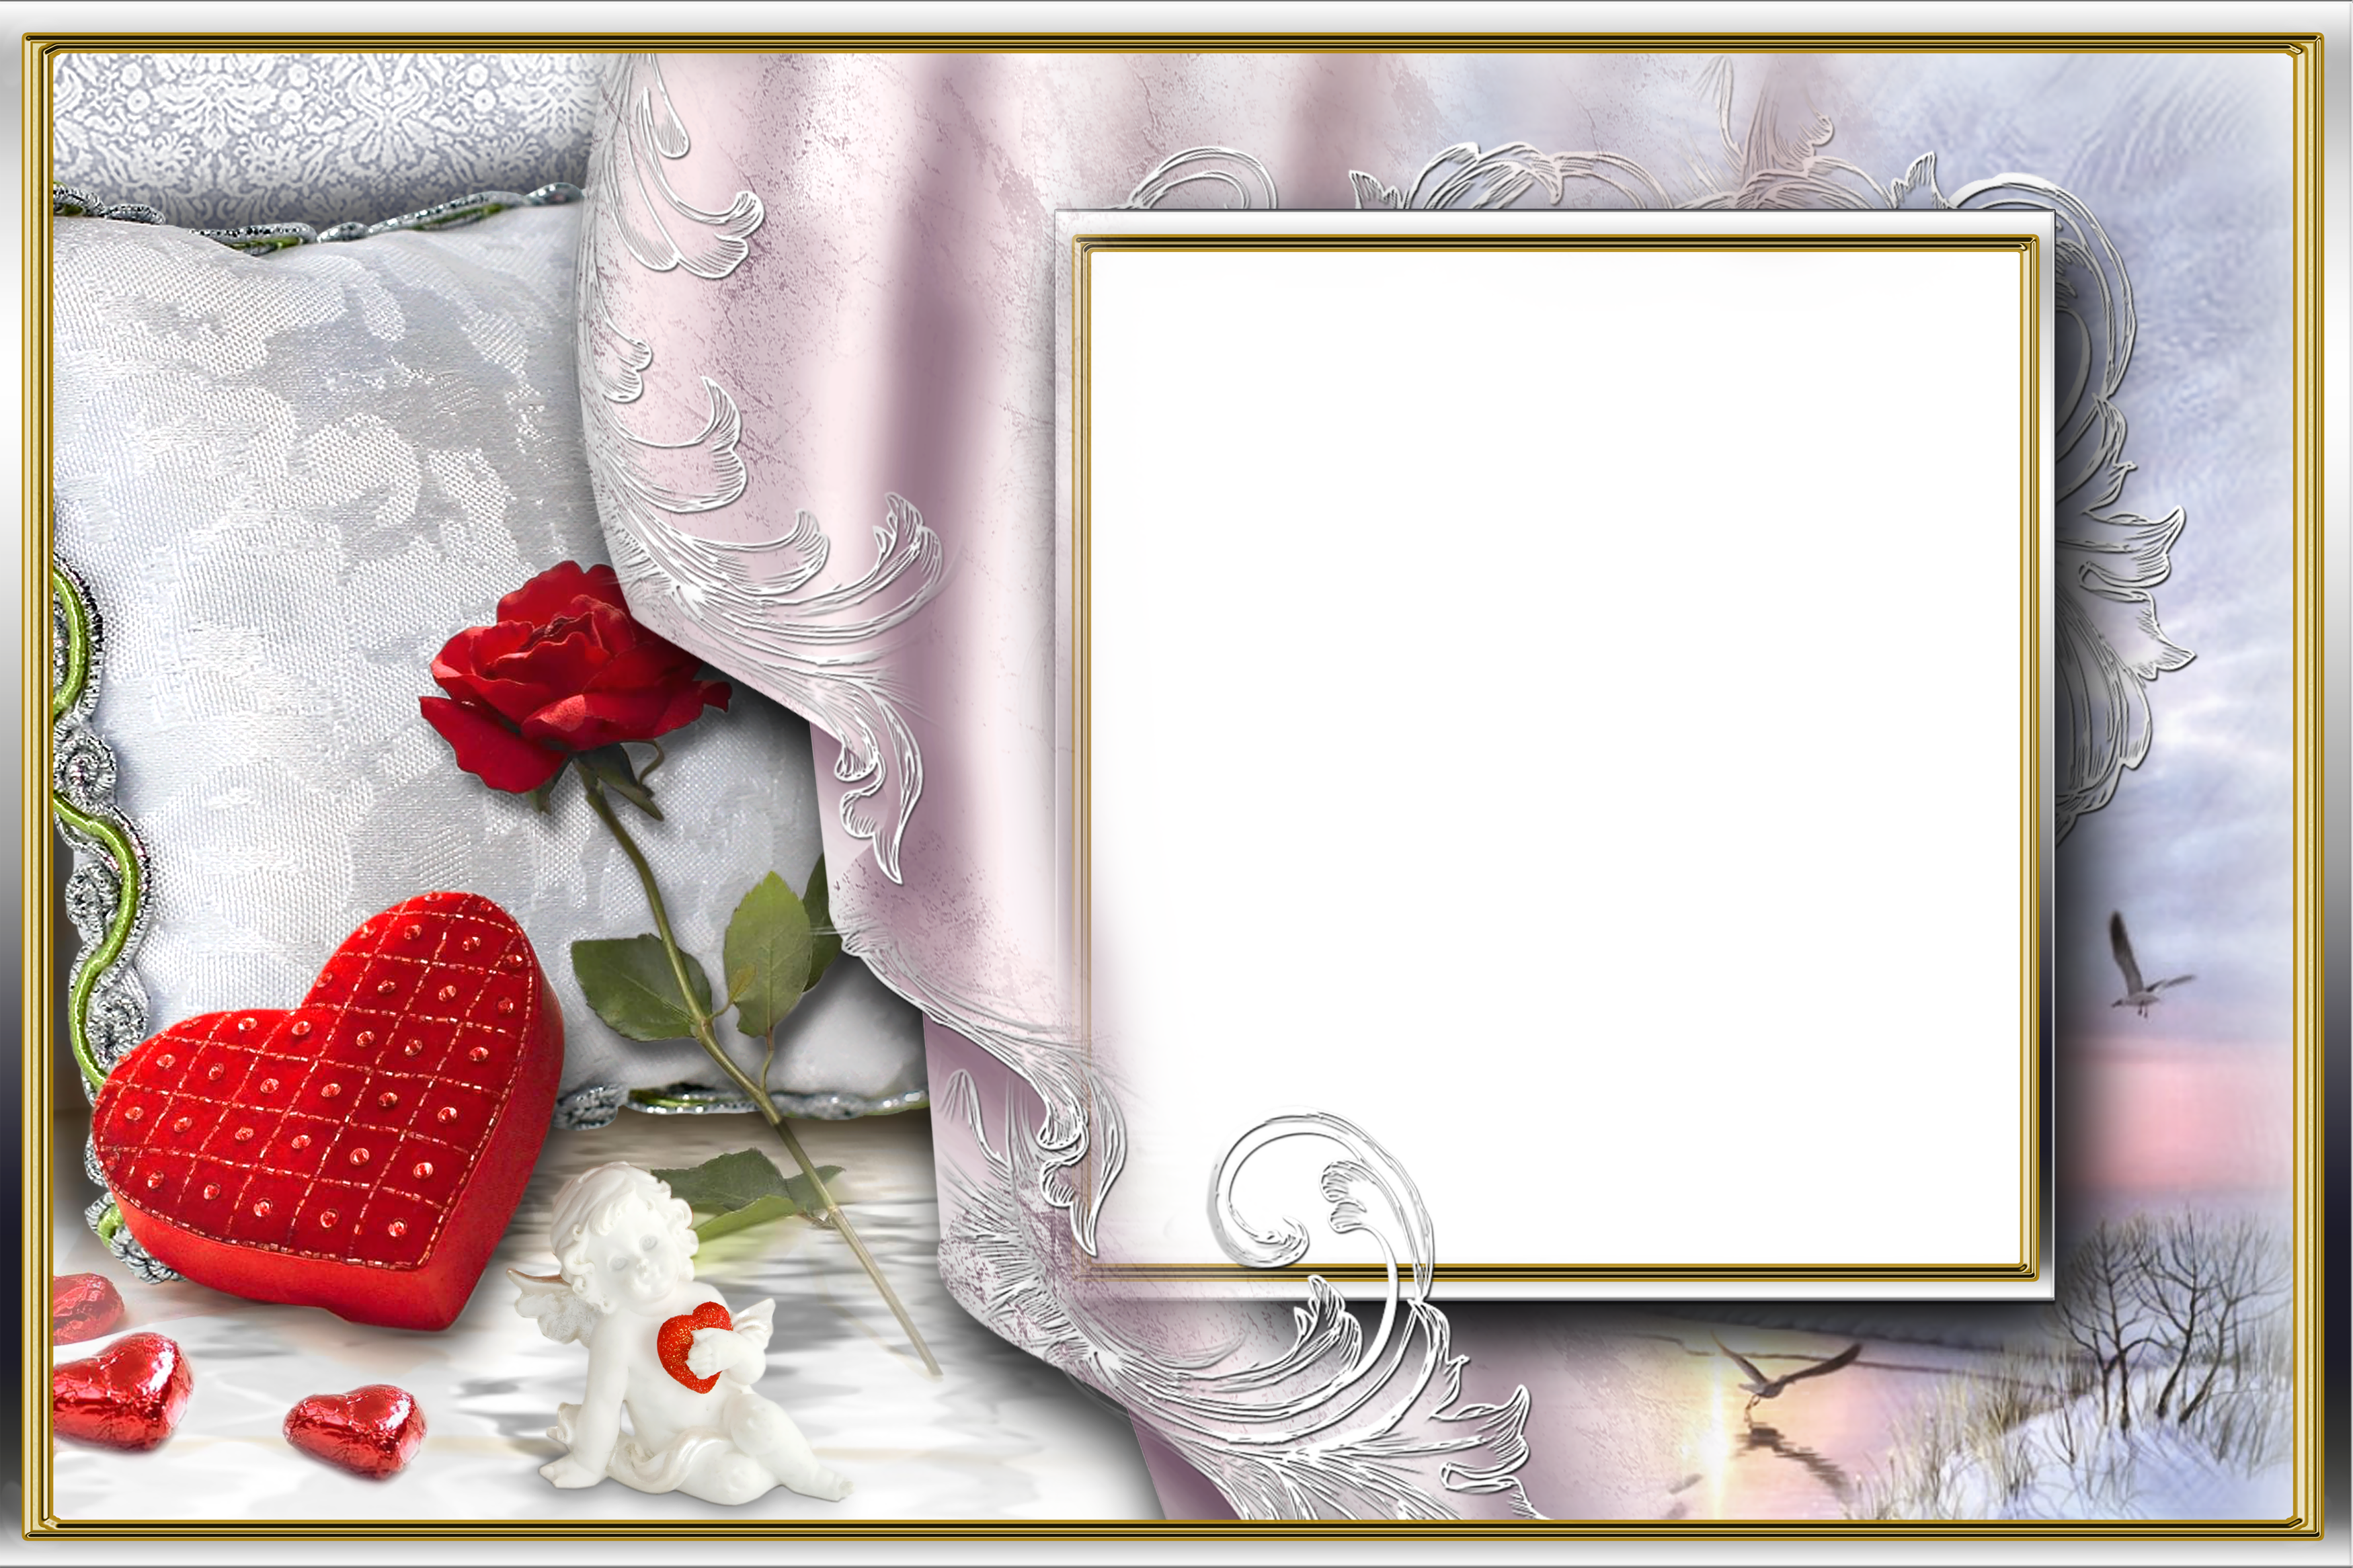 Marriage angels frames png. Romantic photo frame with